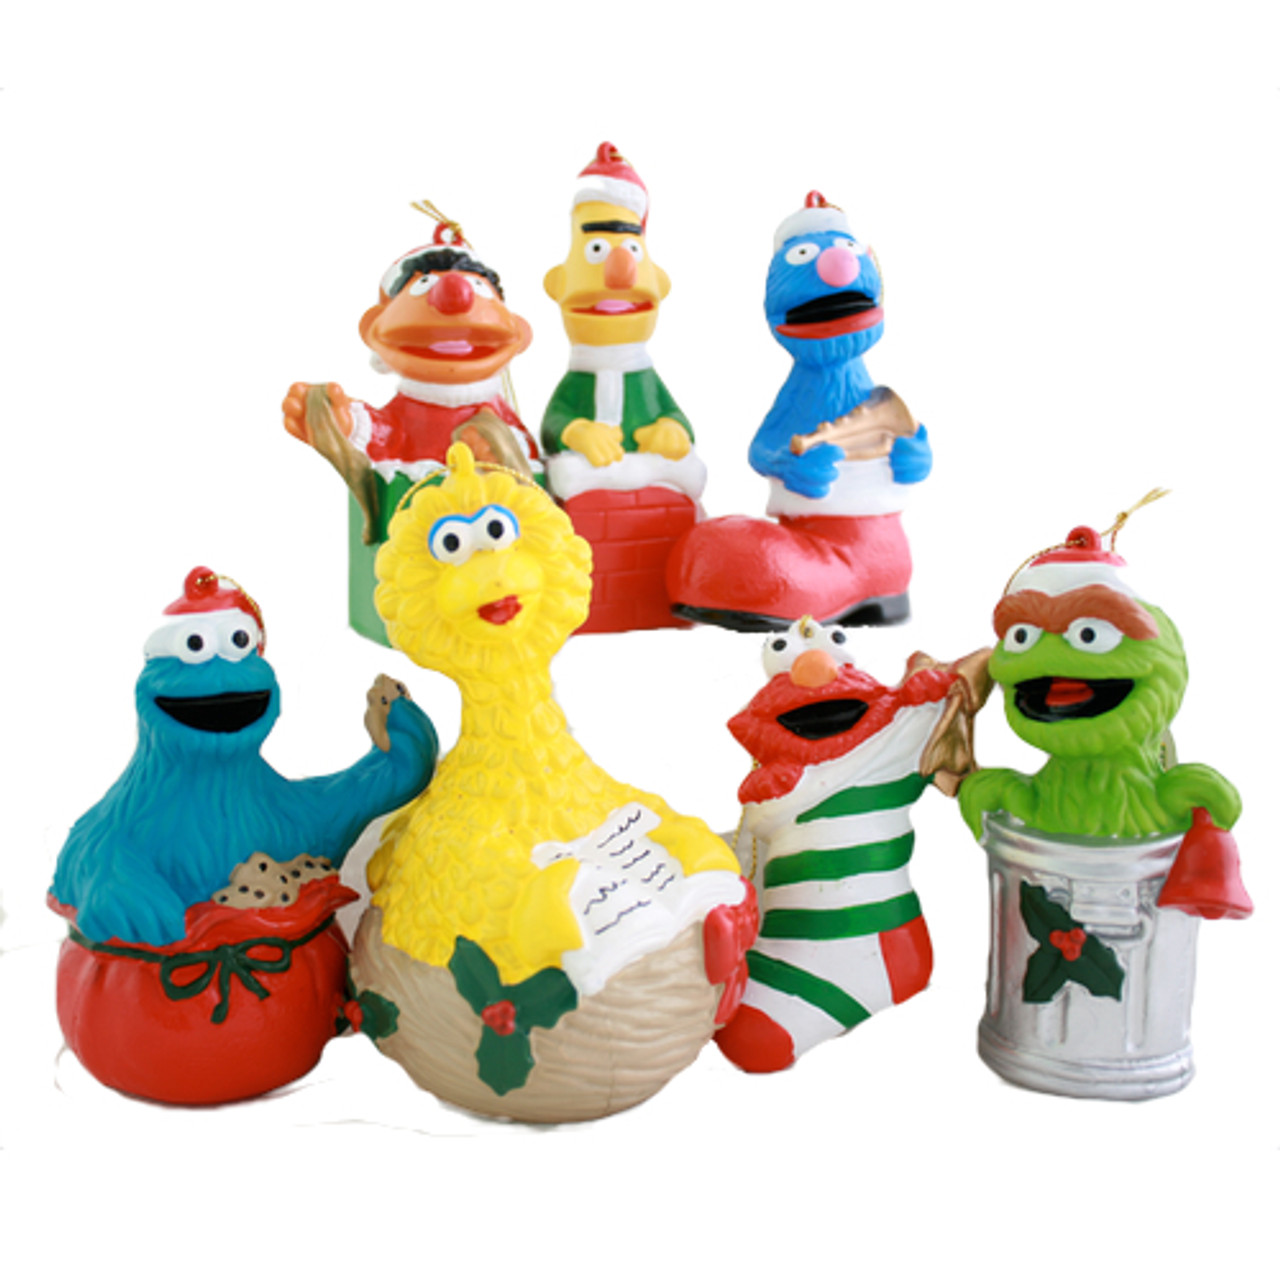 Sesame Street Christmas Ornament Collection